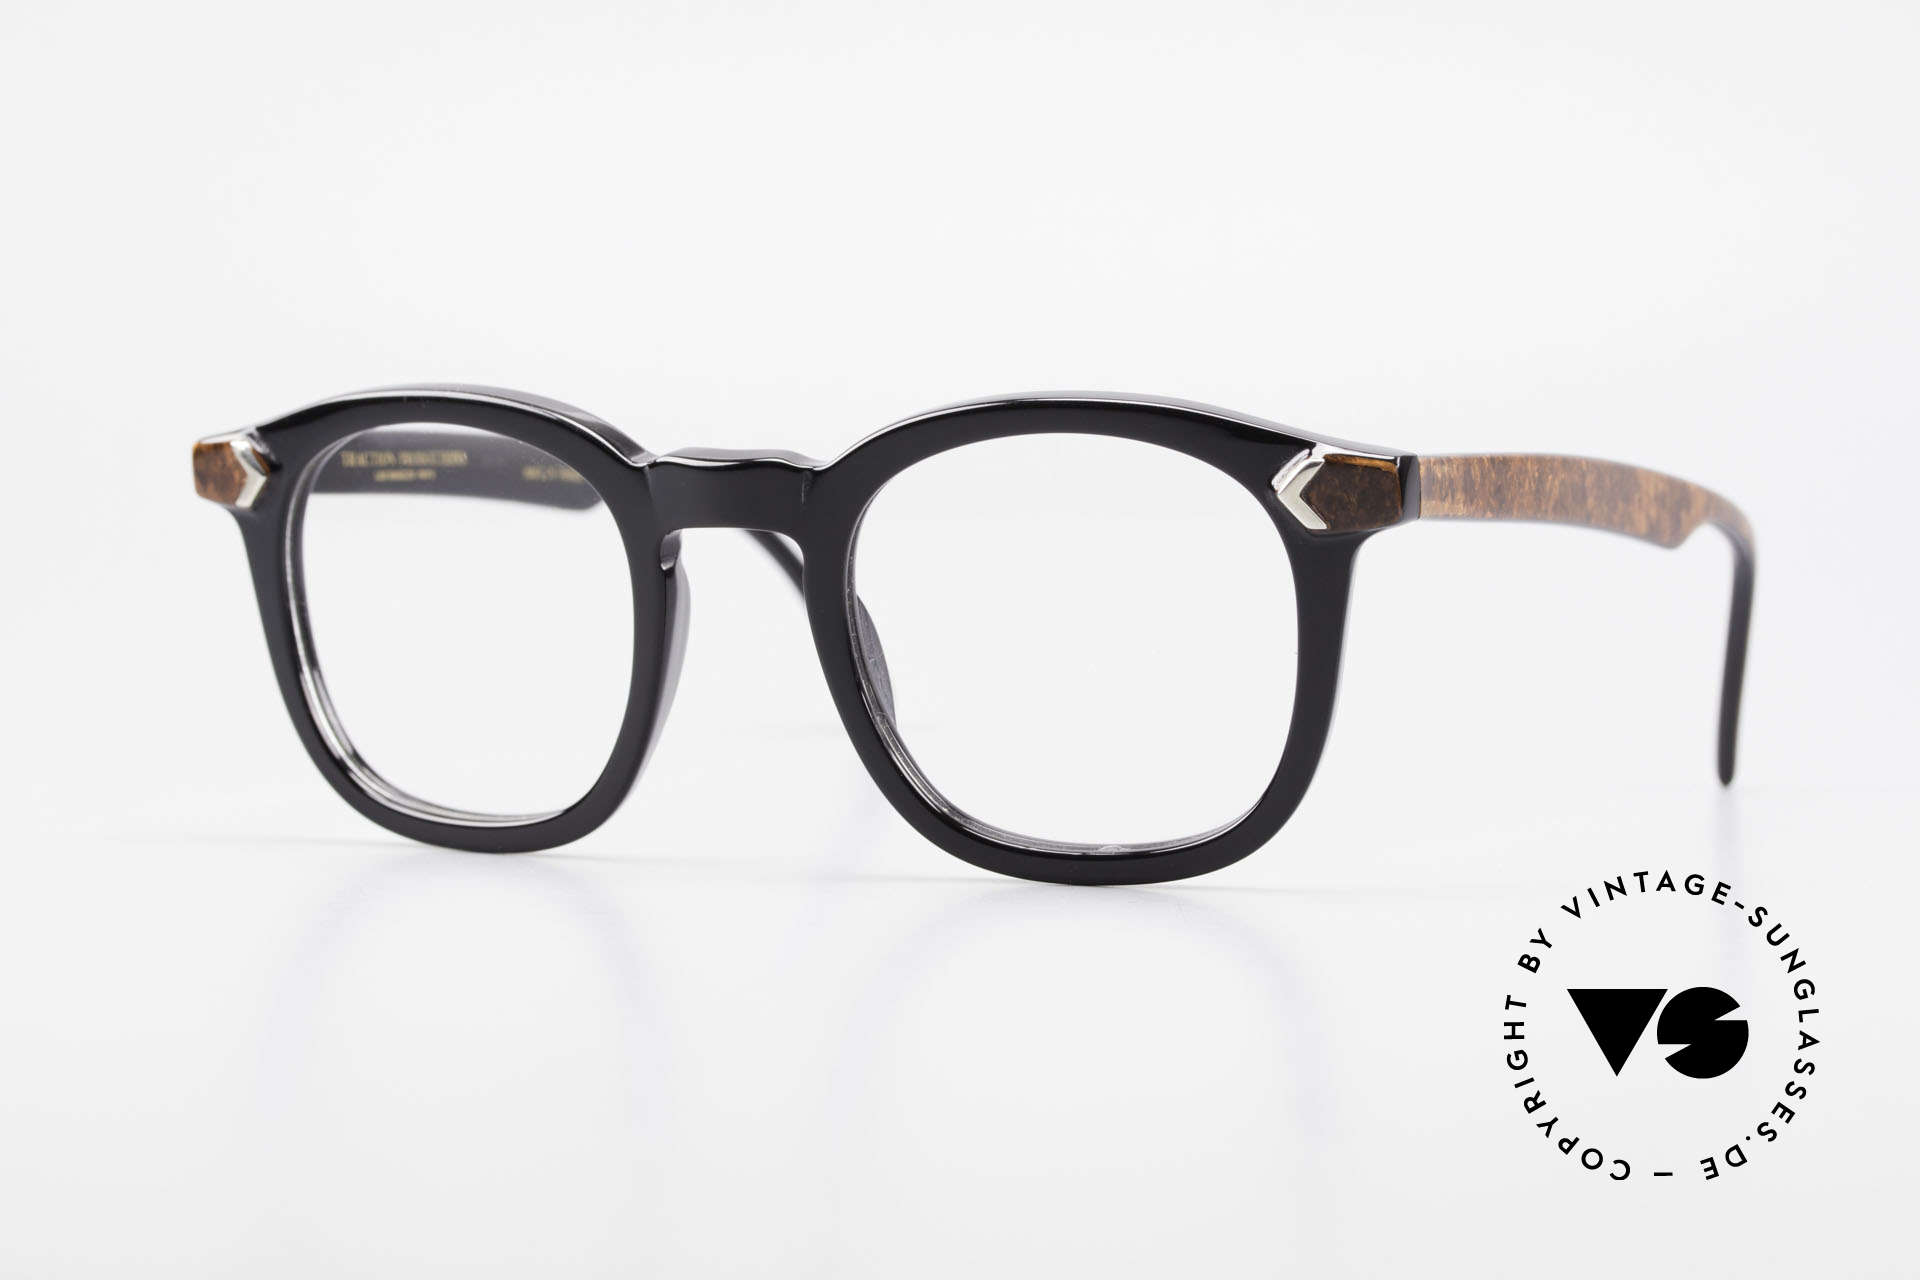 Traction Productions Allen Woody Allen Glasses 1980's, vintage frame by 'Traction Productions' France, Made for Men and Women